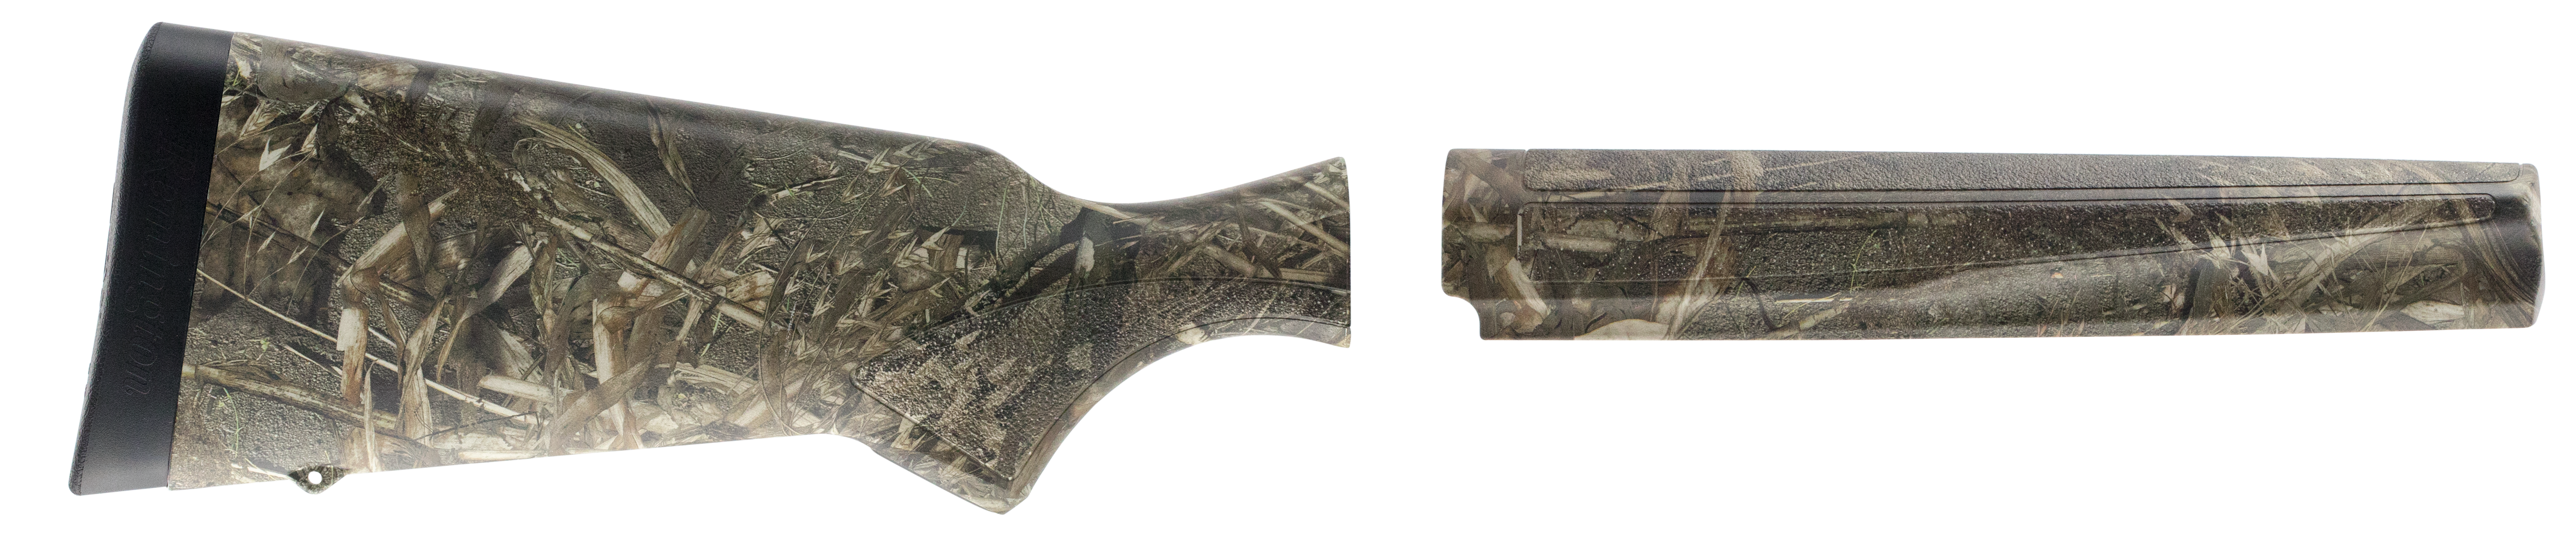 Remington Versa Max Sportsman 12 GA Shotgun Stock/Forend - Synthetic Mossy Oak Duck Blind